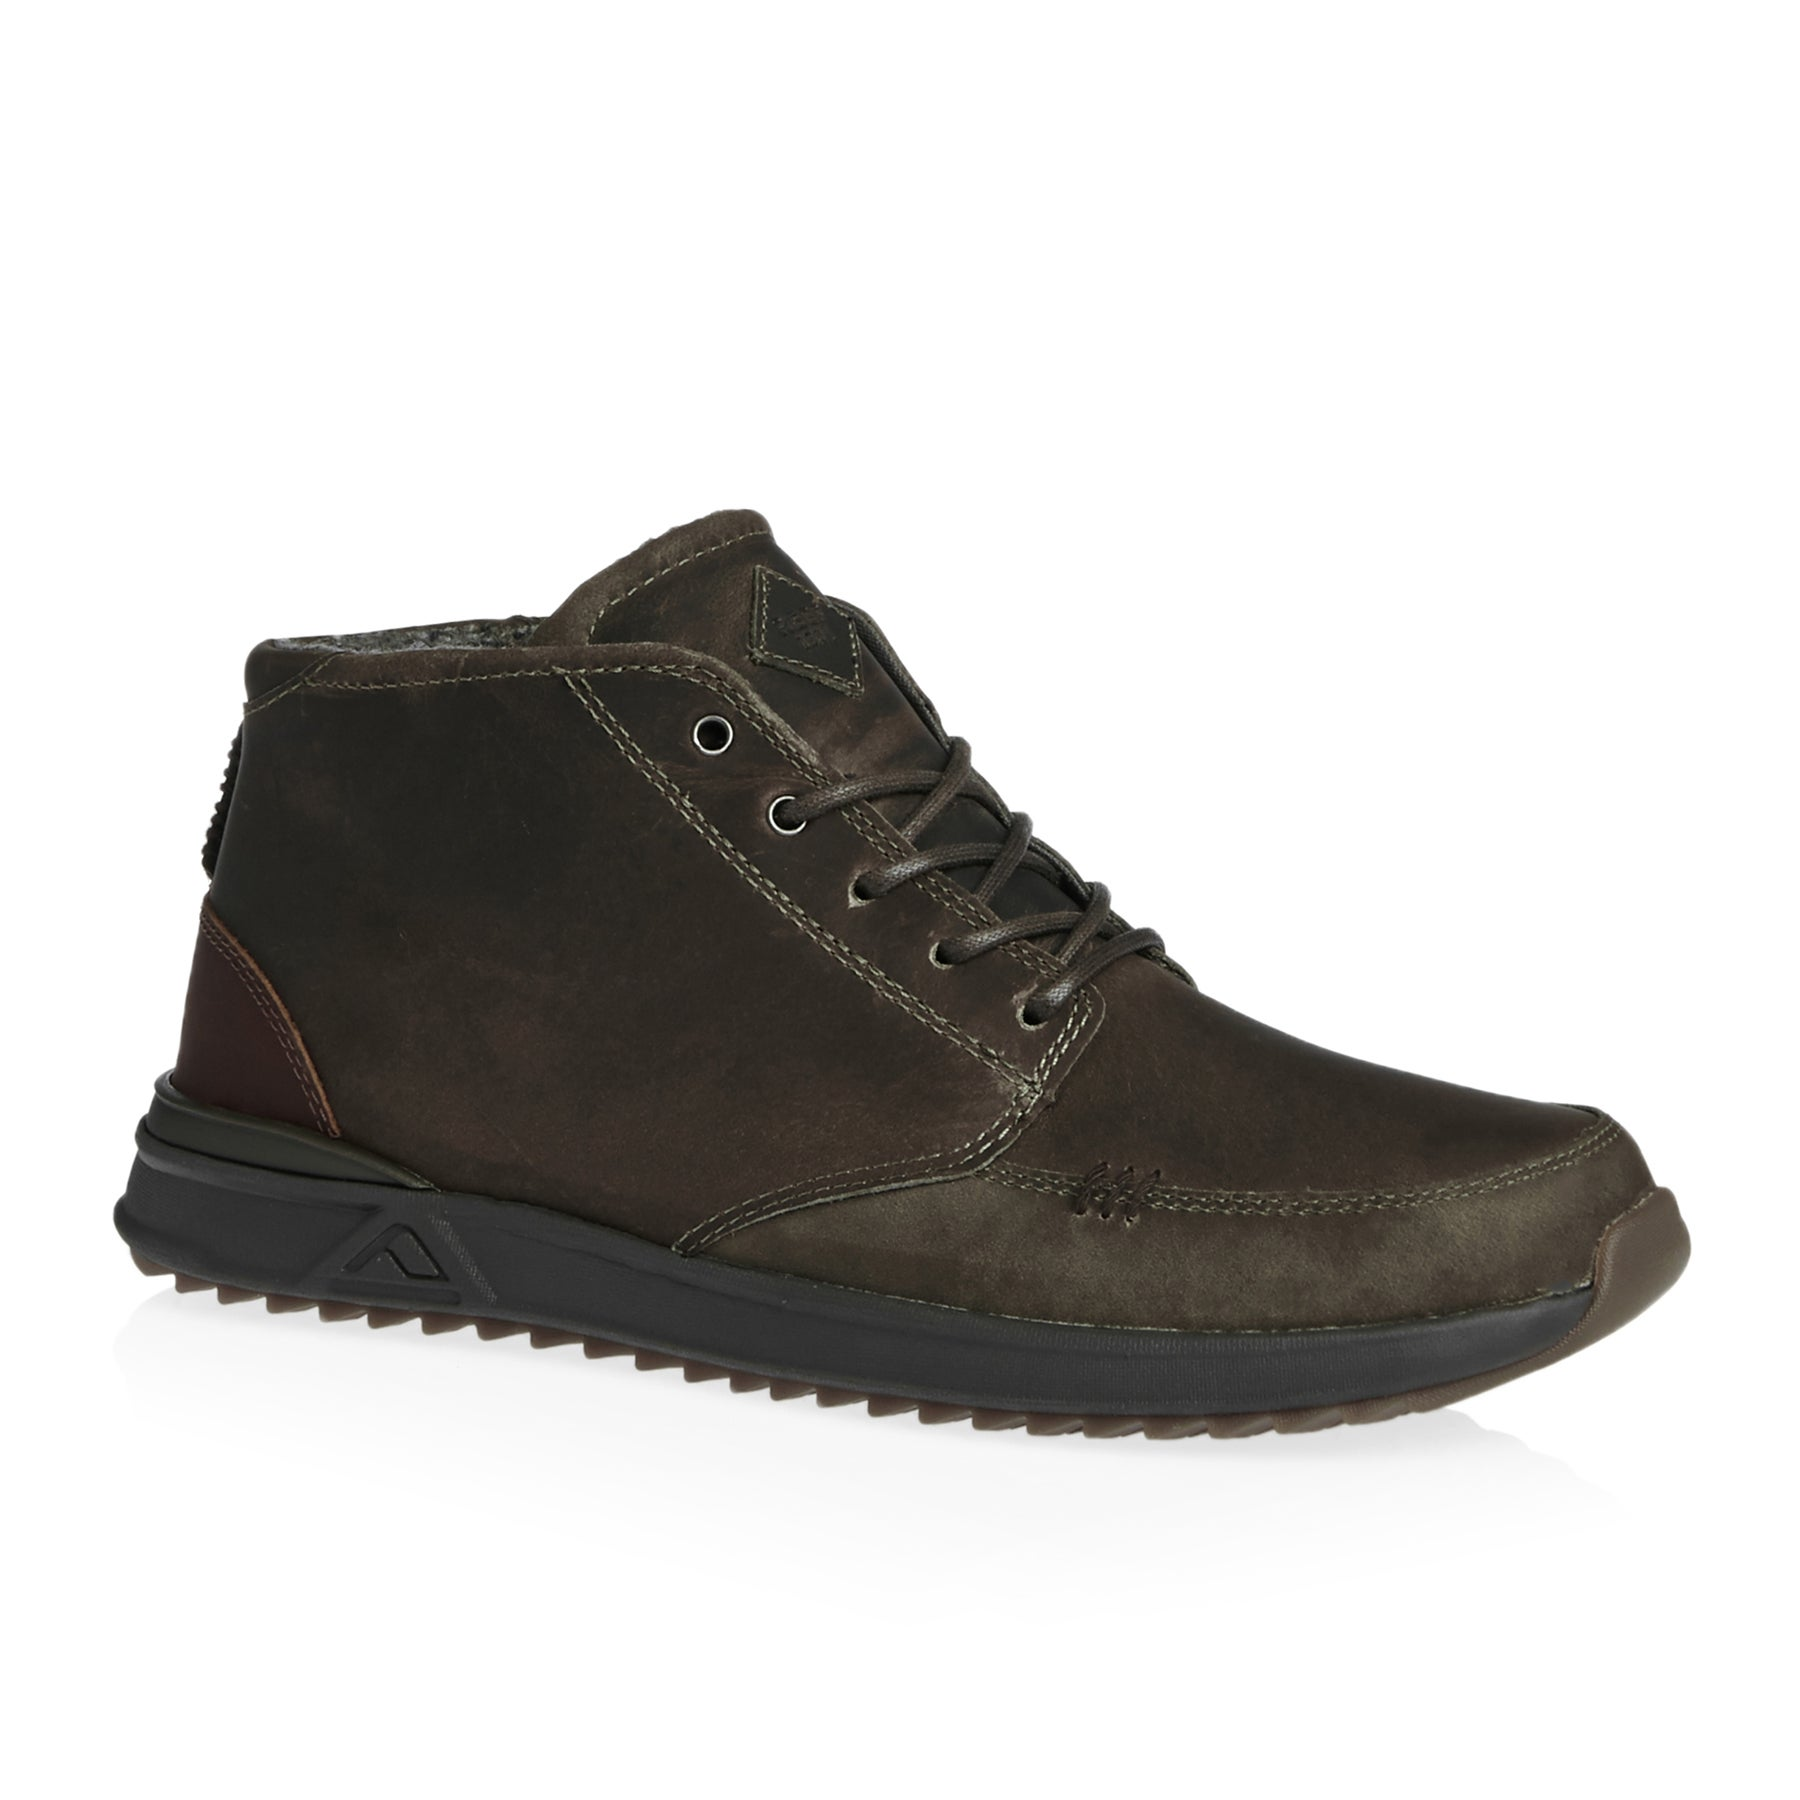 Chaussures Reef Rover Mid Wt Slate - Wt Slate